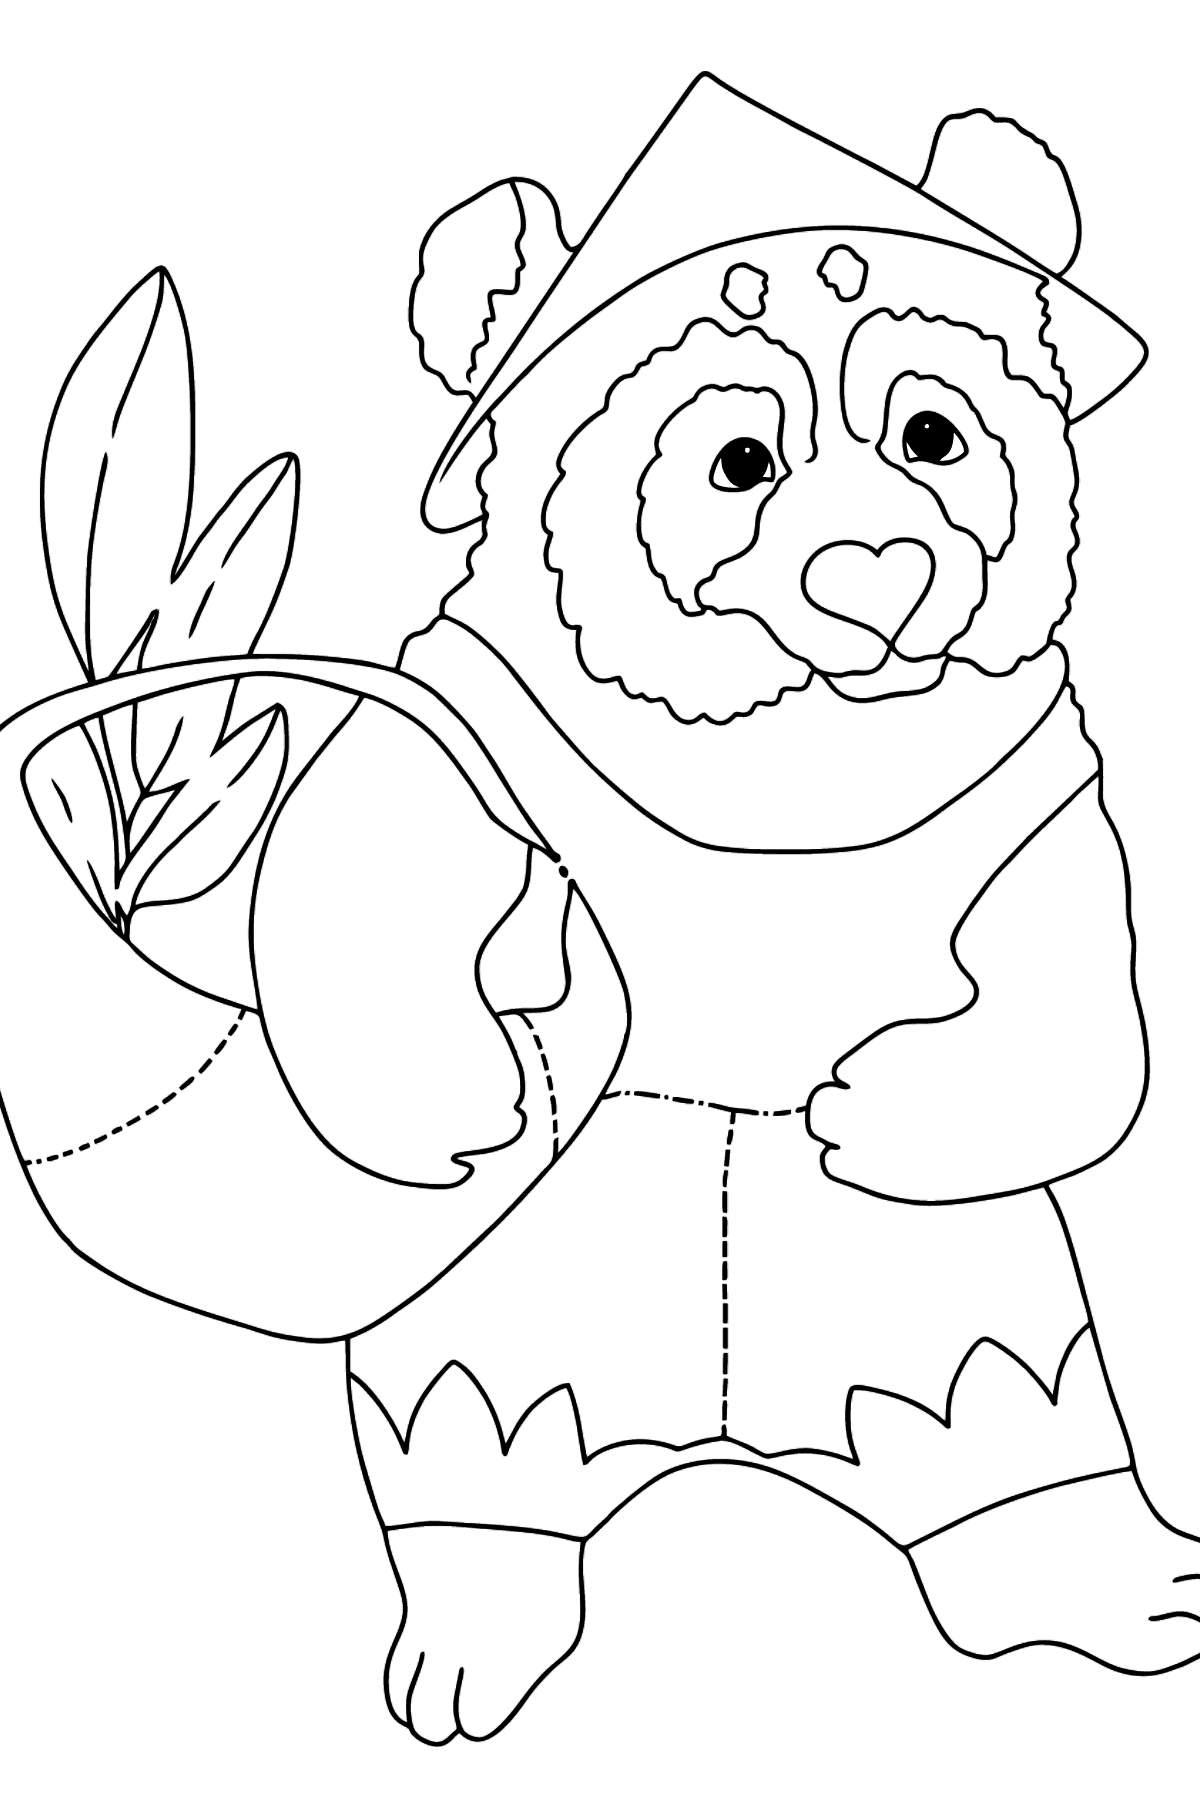 Coloring Page - A Panda with a Basket - Coloring Pages for Kids